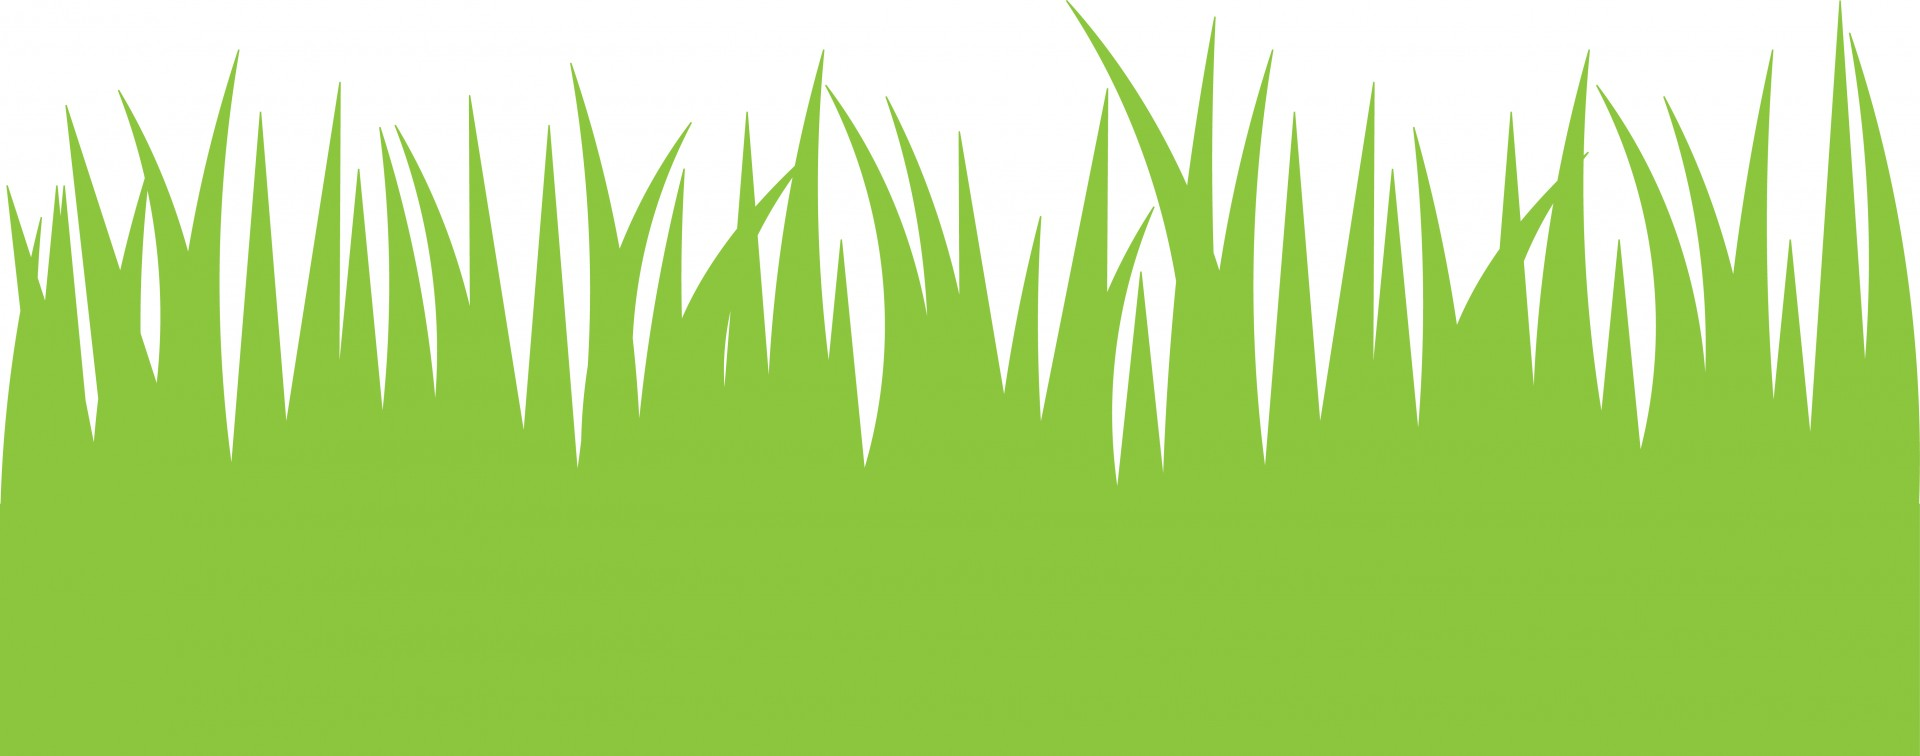 Lawn clipart #7, Download drawings